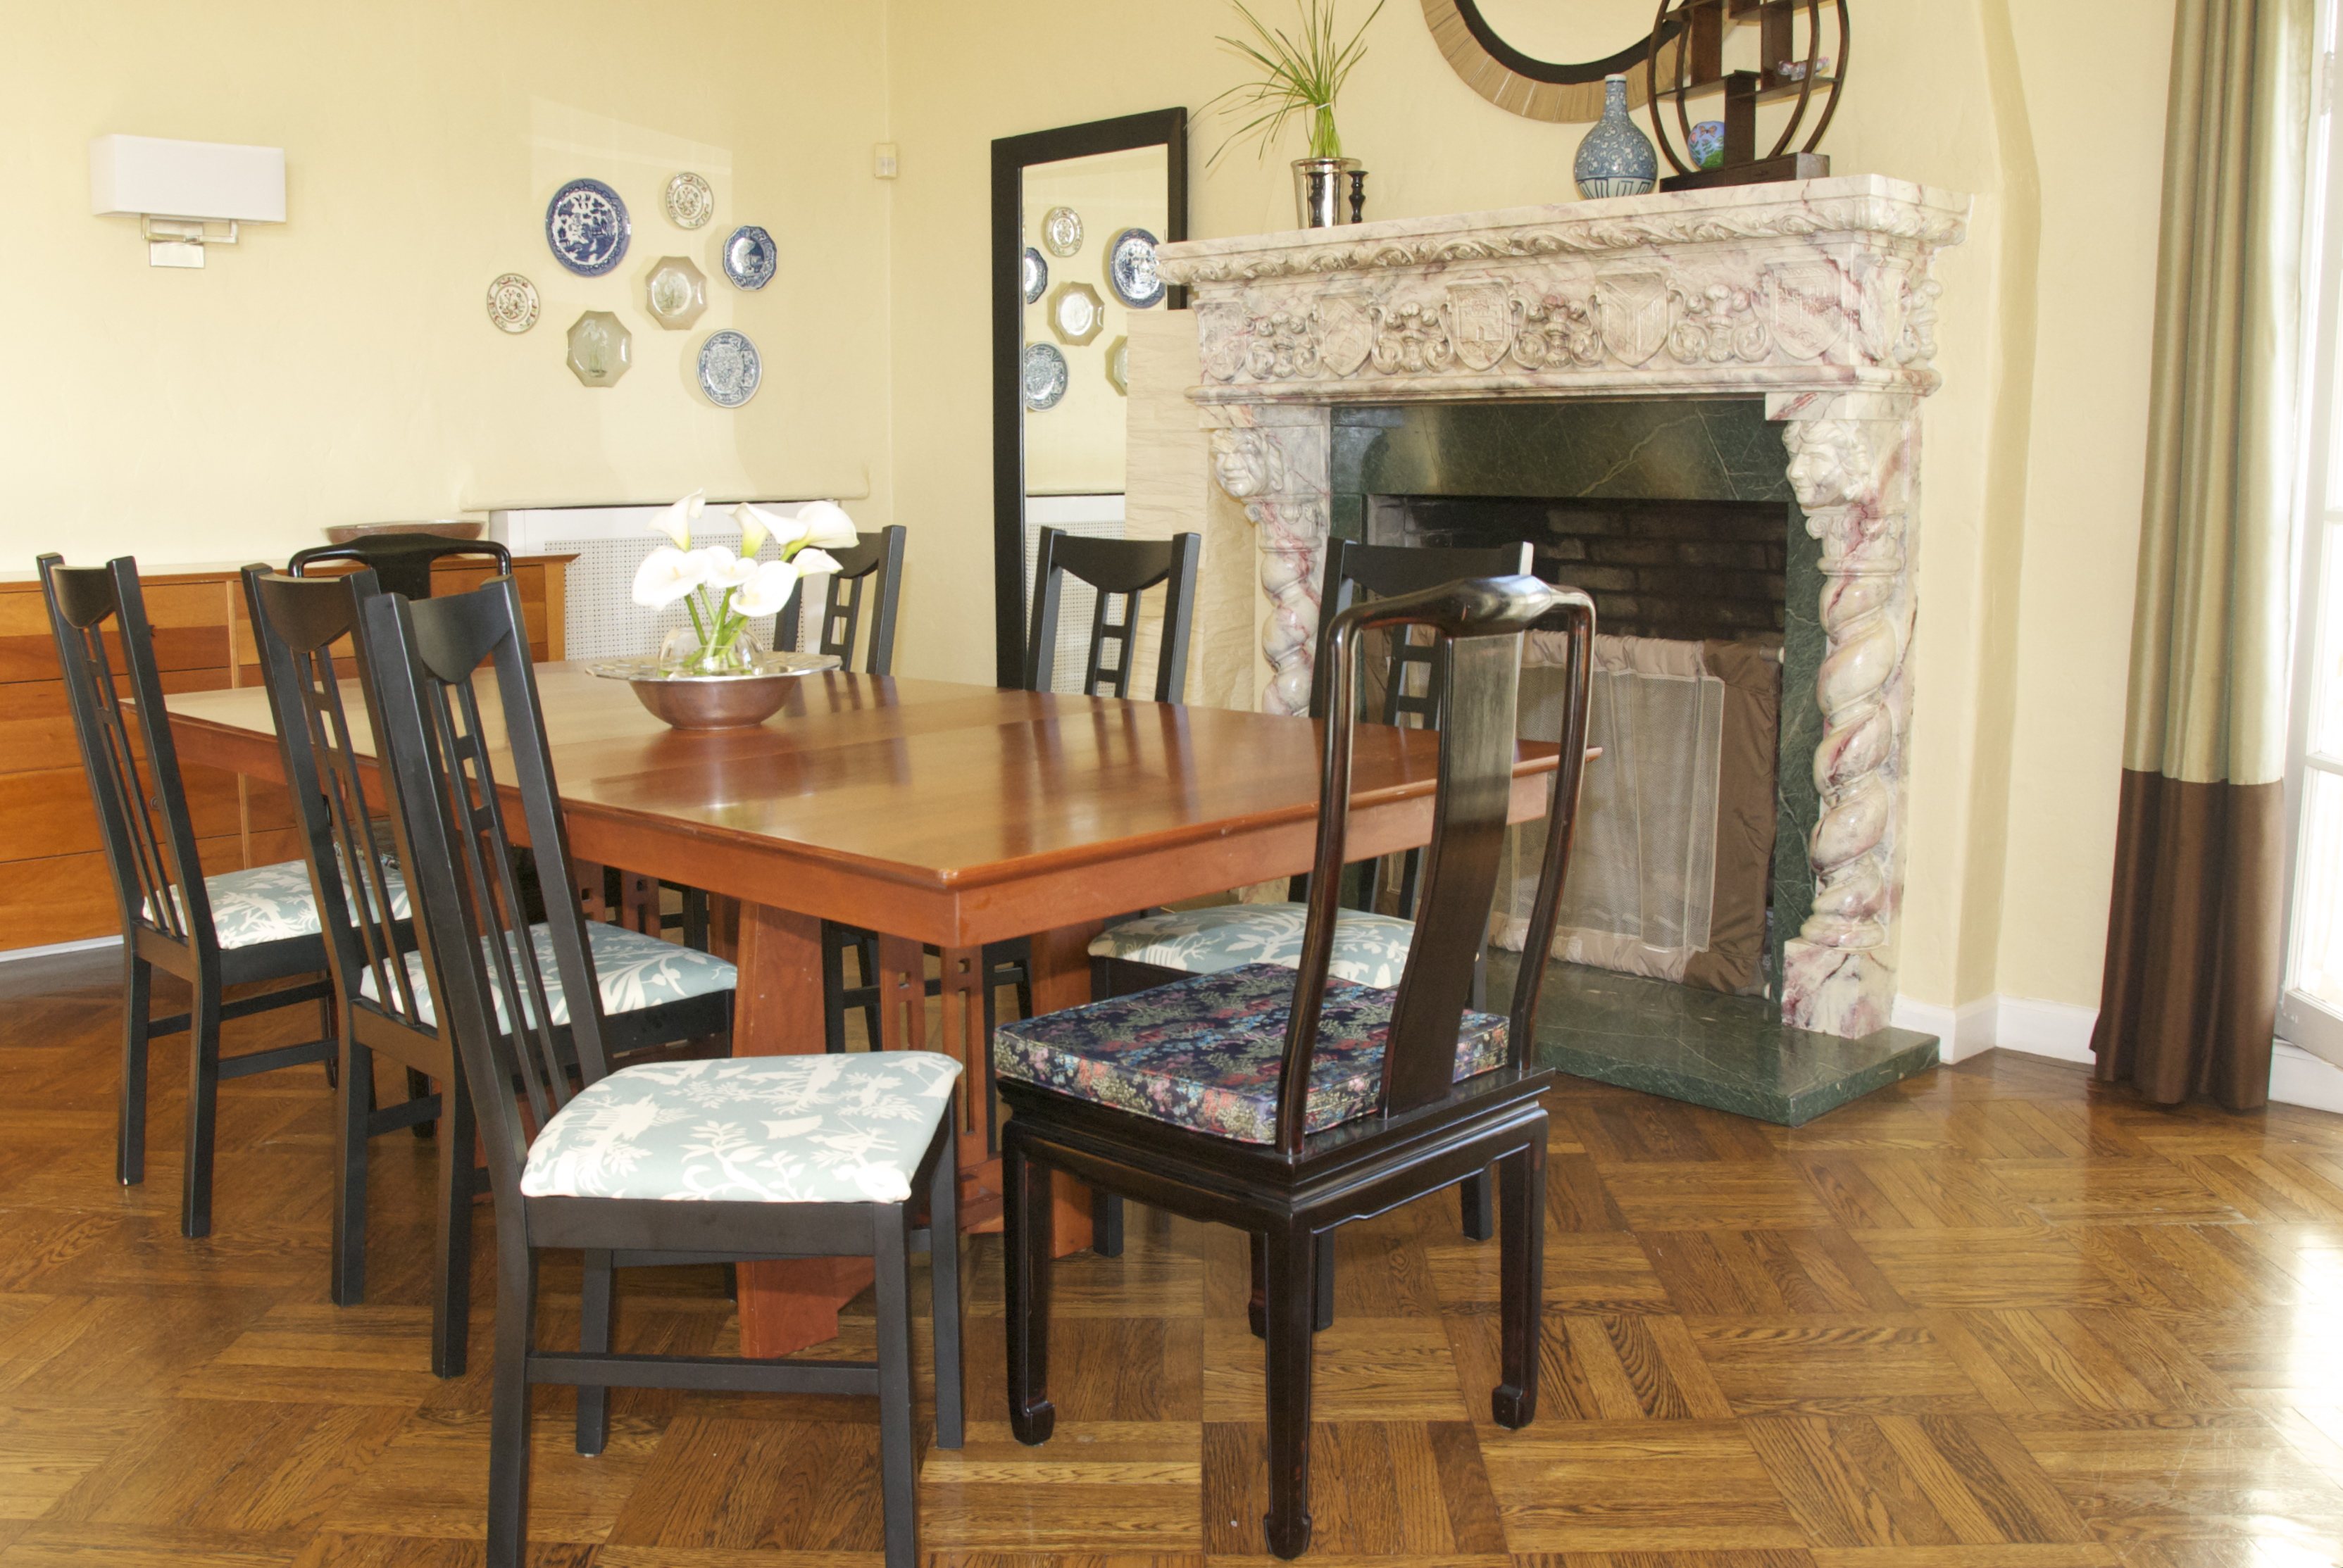 ikea dining chairs all grown up craftsman and regency makeovers